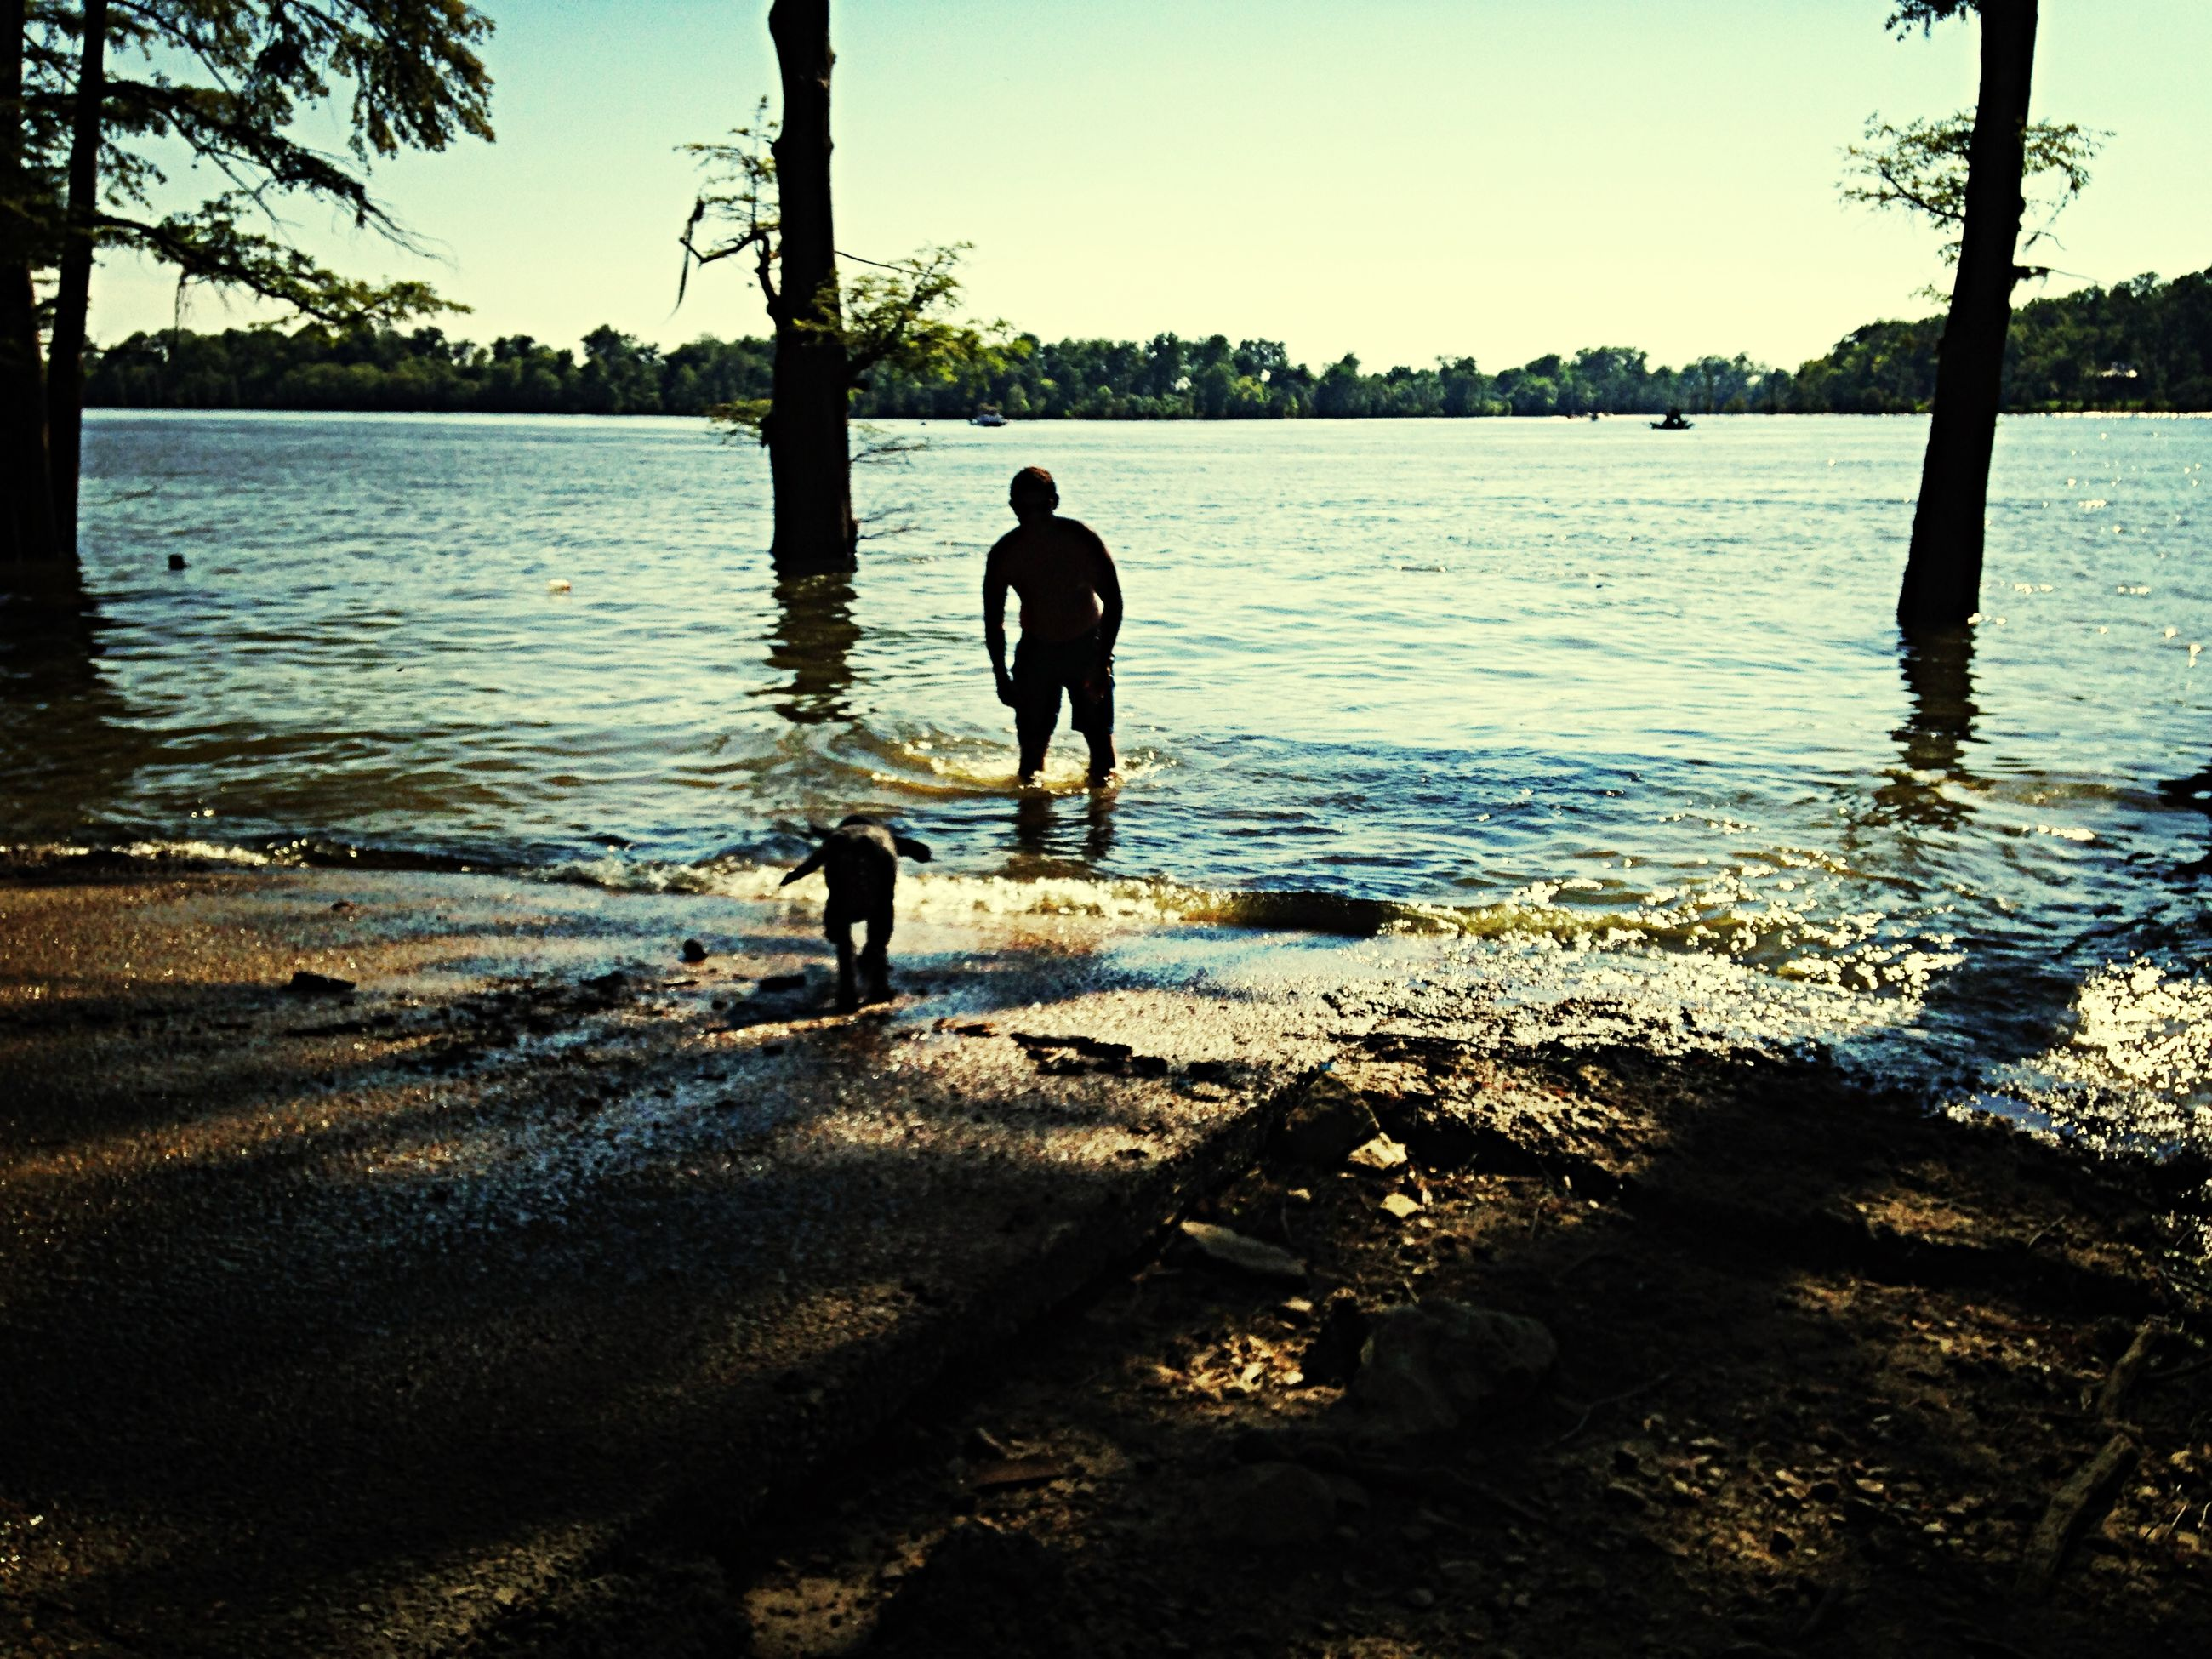 water, silhouette, full length, standing, rear view, men, tranquility, lifestyles, lake, leisure activity, reflection, tree, tranquil scene, clear sky, nature, walking, sky, rippled